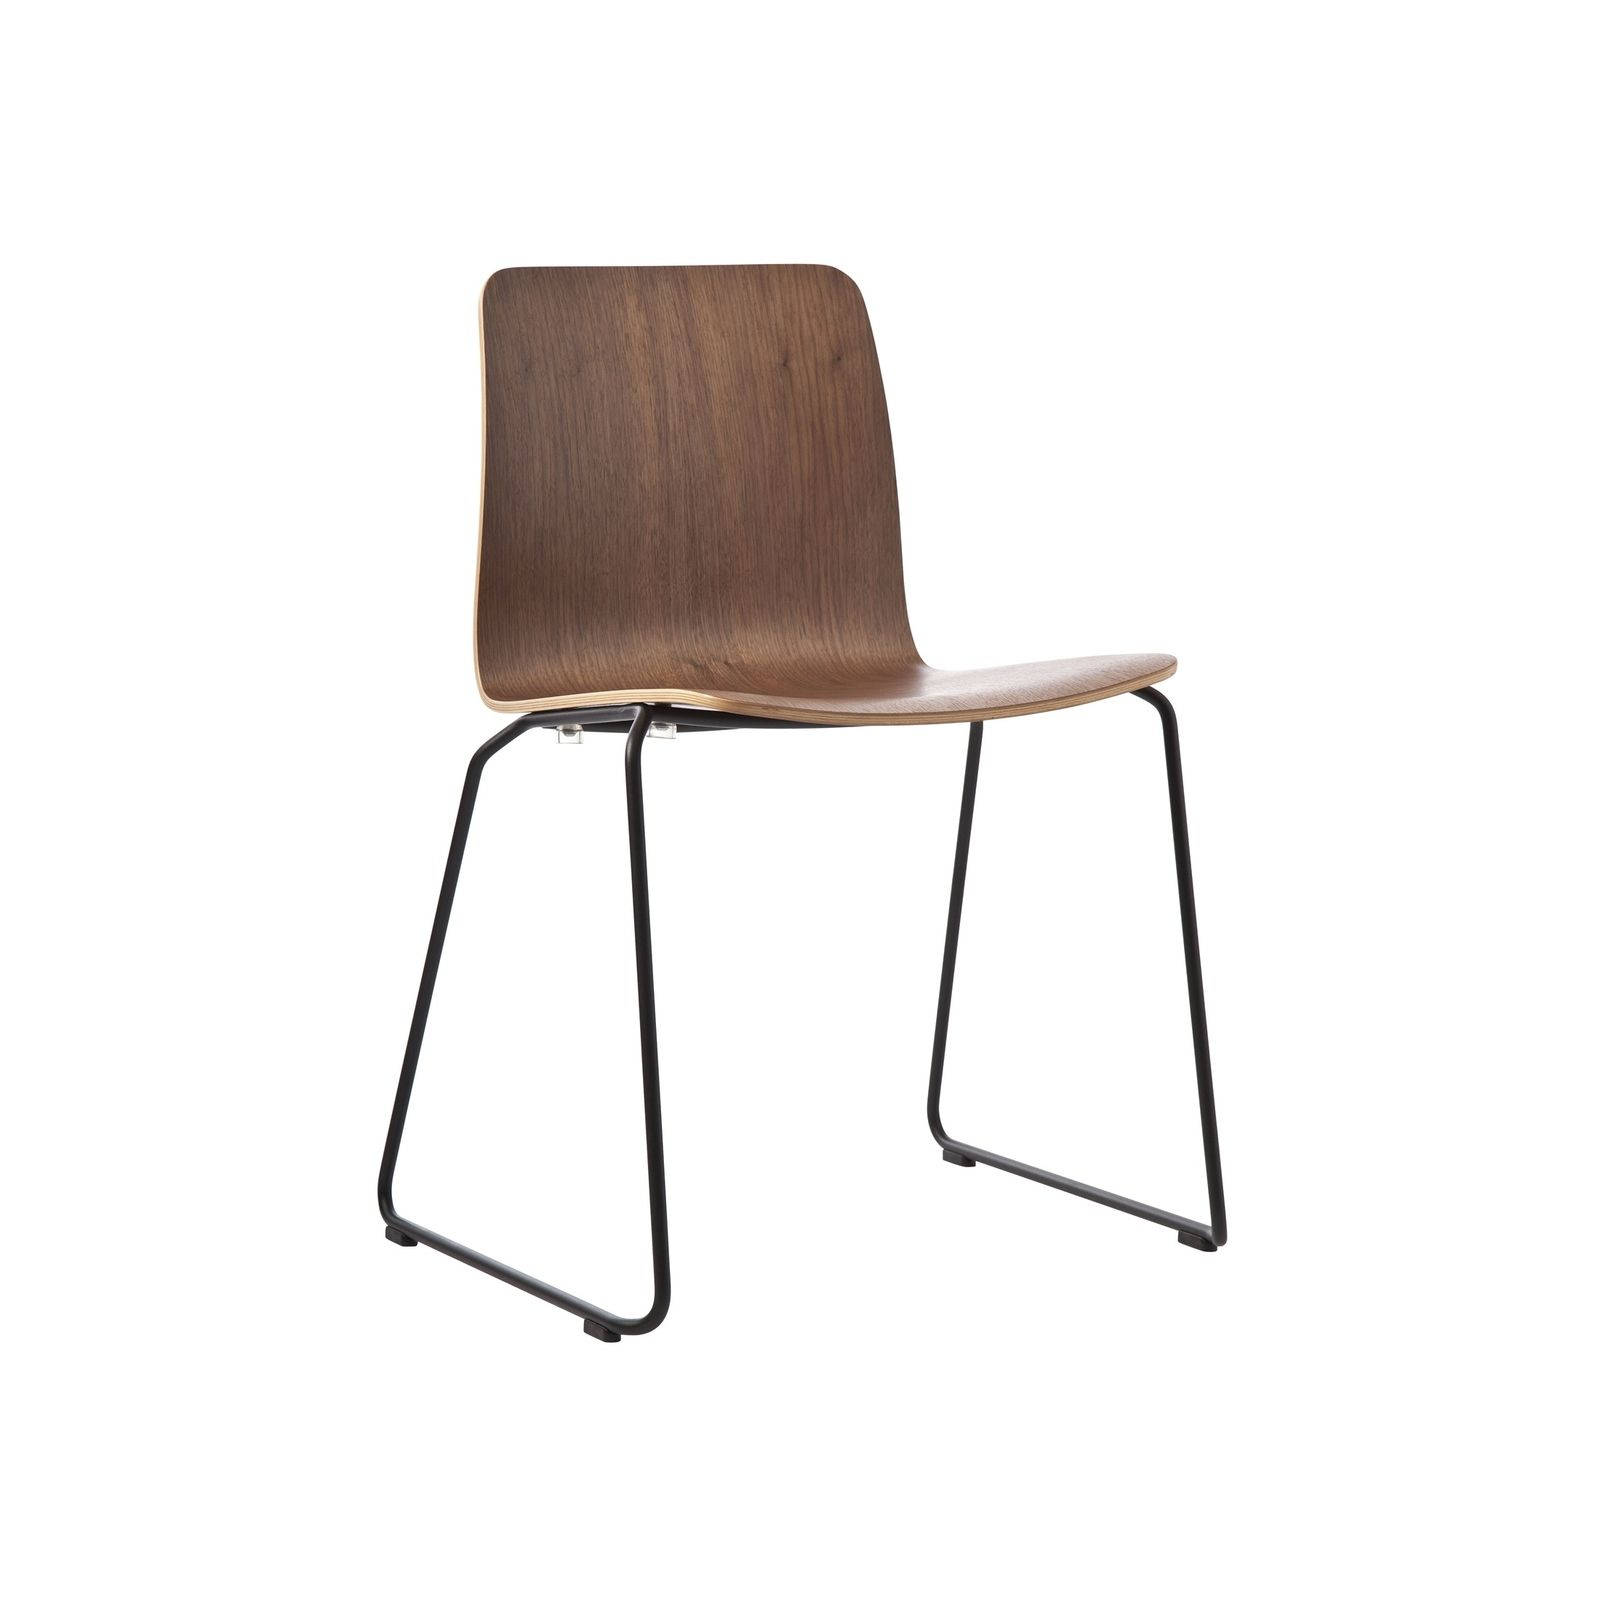 Hay Stühle Hay Jw01 Jakob Wagner Stühle Woont Love Your Home Chairs